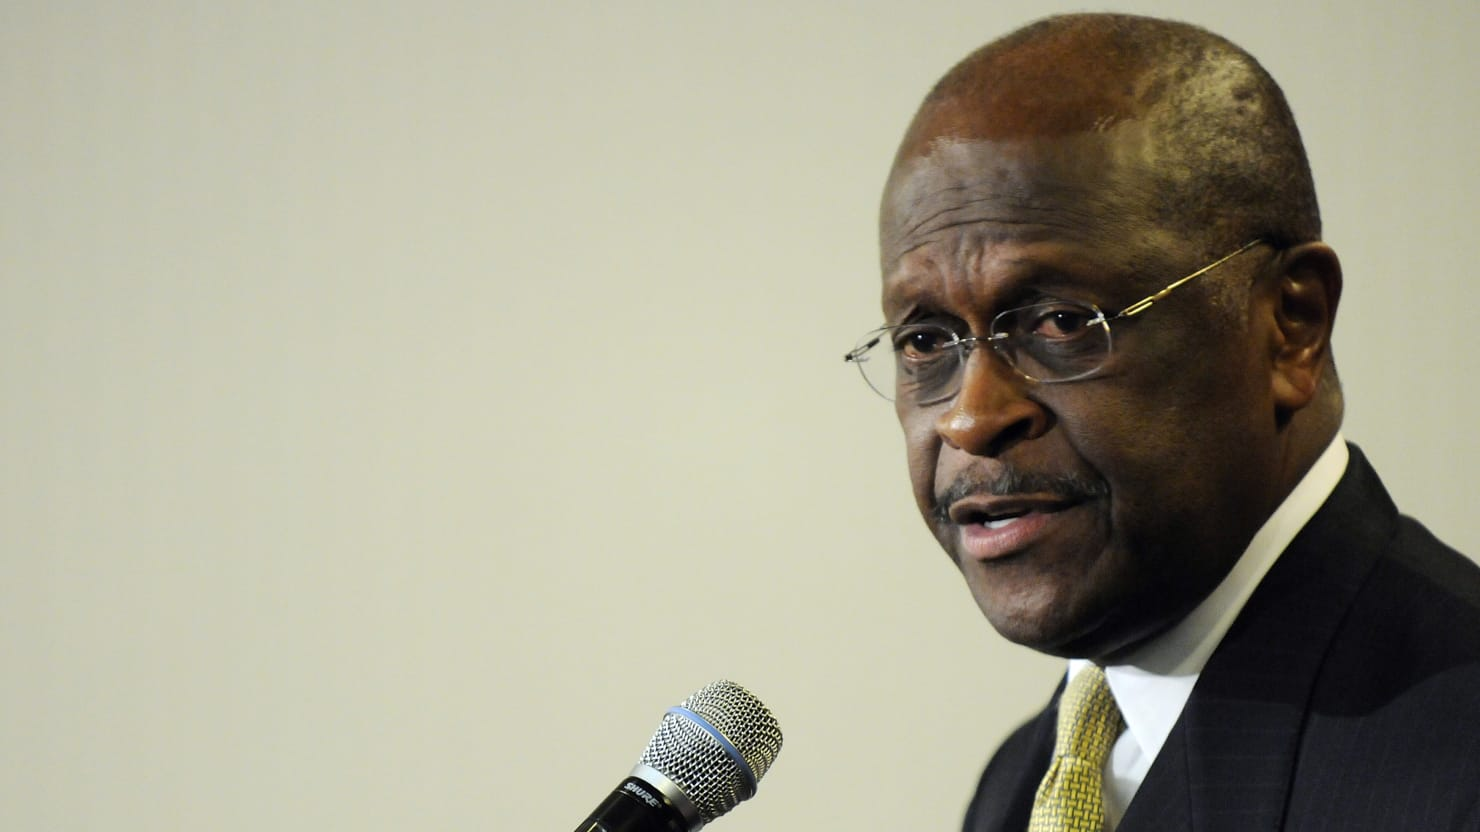 Herman Cain Hospitalized With COVID-19 Days After Attending Trump's Tulsa Rally